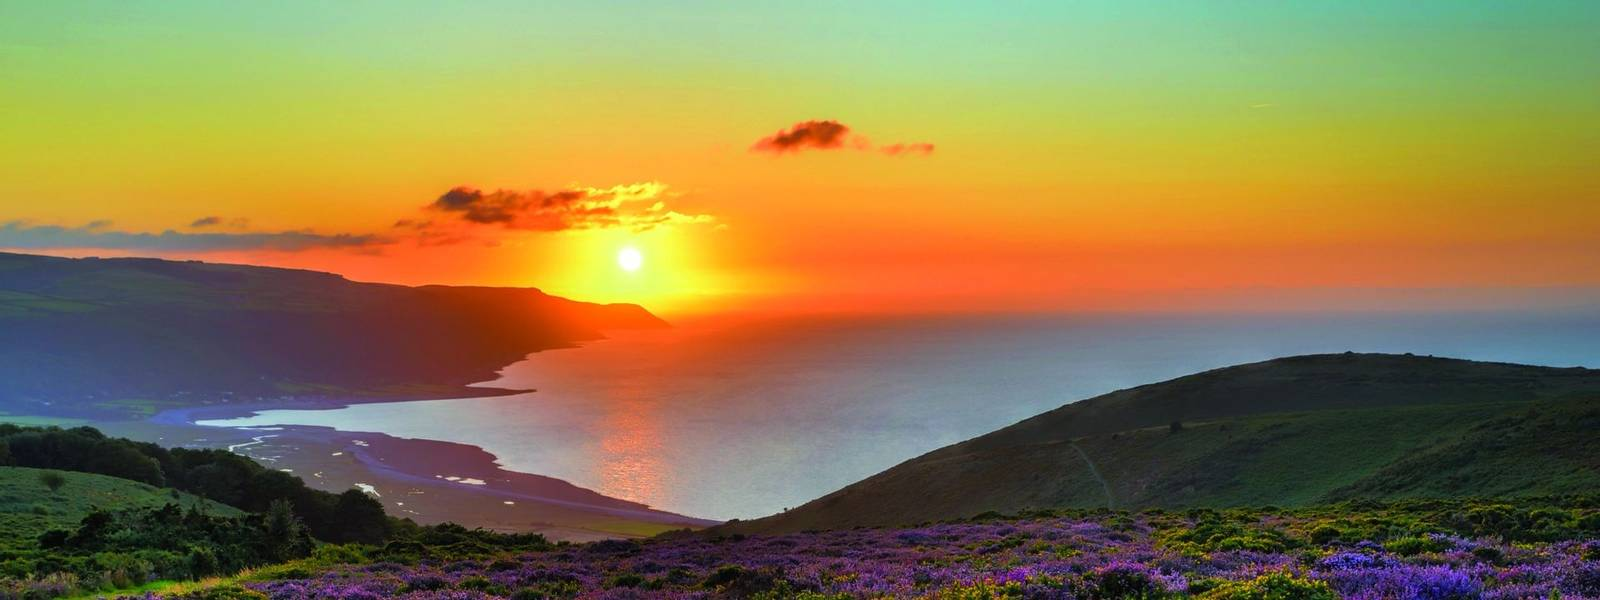 Sunset over Porlock Bay, Exmoor, England